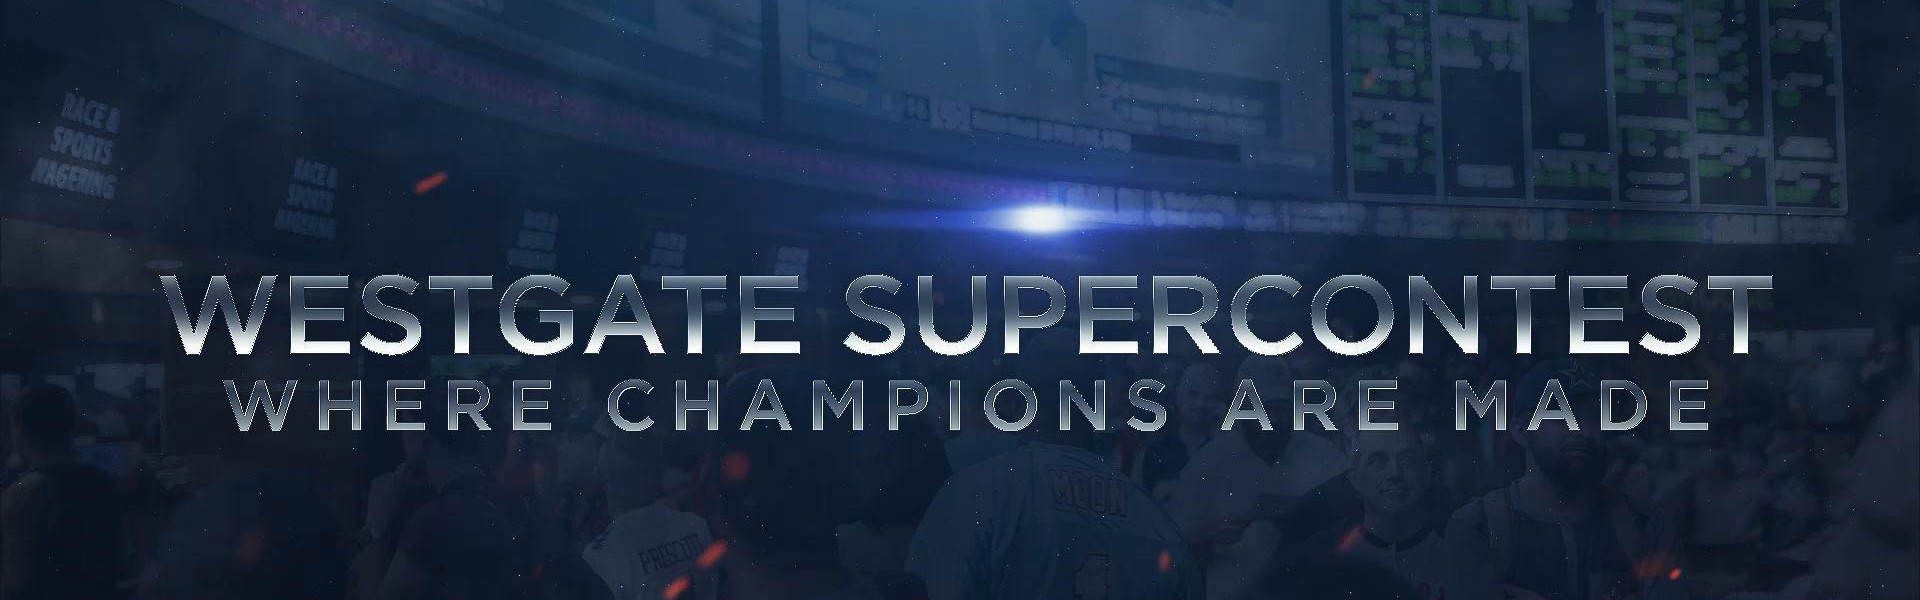 Westgate Resorts SuperContest® & SuperContest Gold® are the Ultimate Pro Football Handicapping Contests